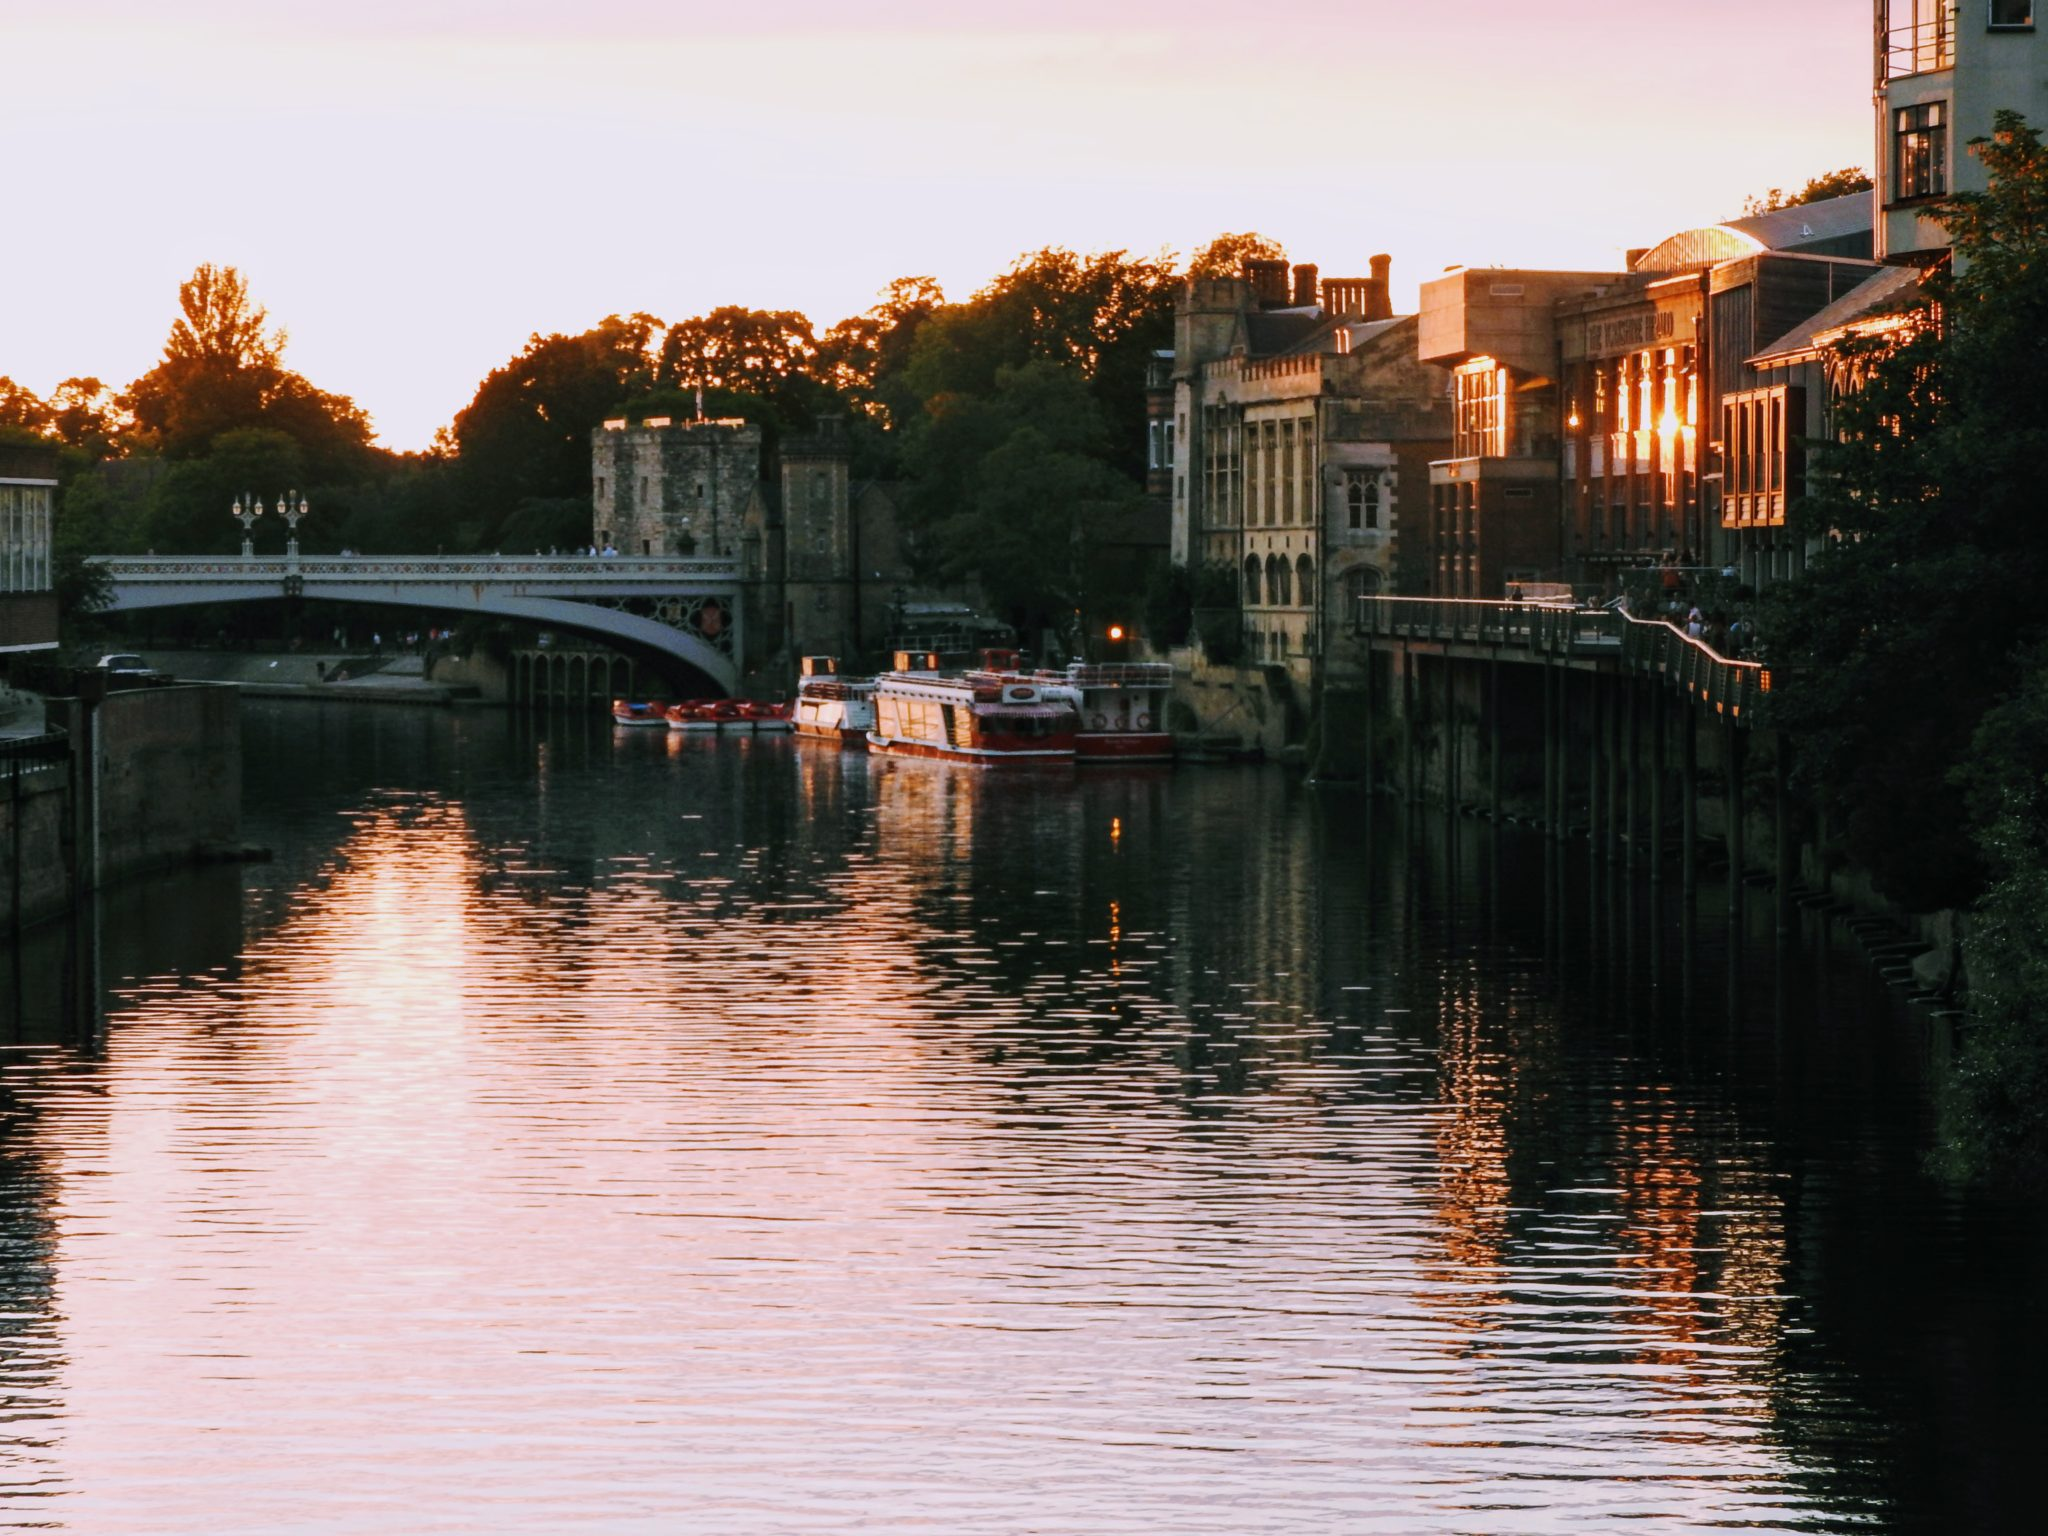 Sunset over the River Ouse in Yorkshire, seen from a bridge in the city of York.